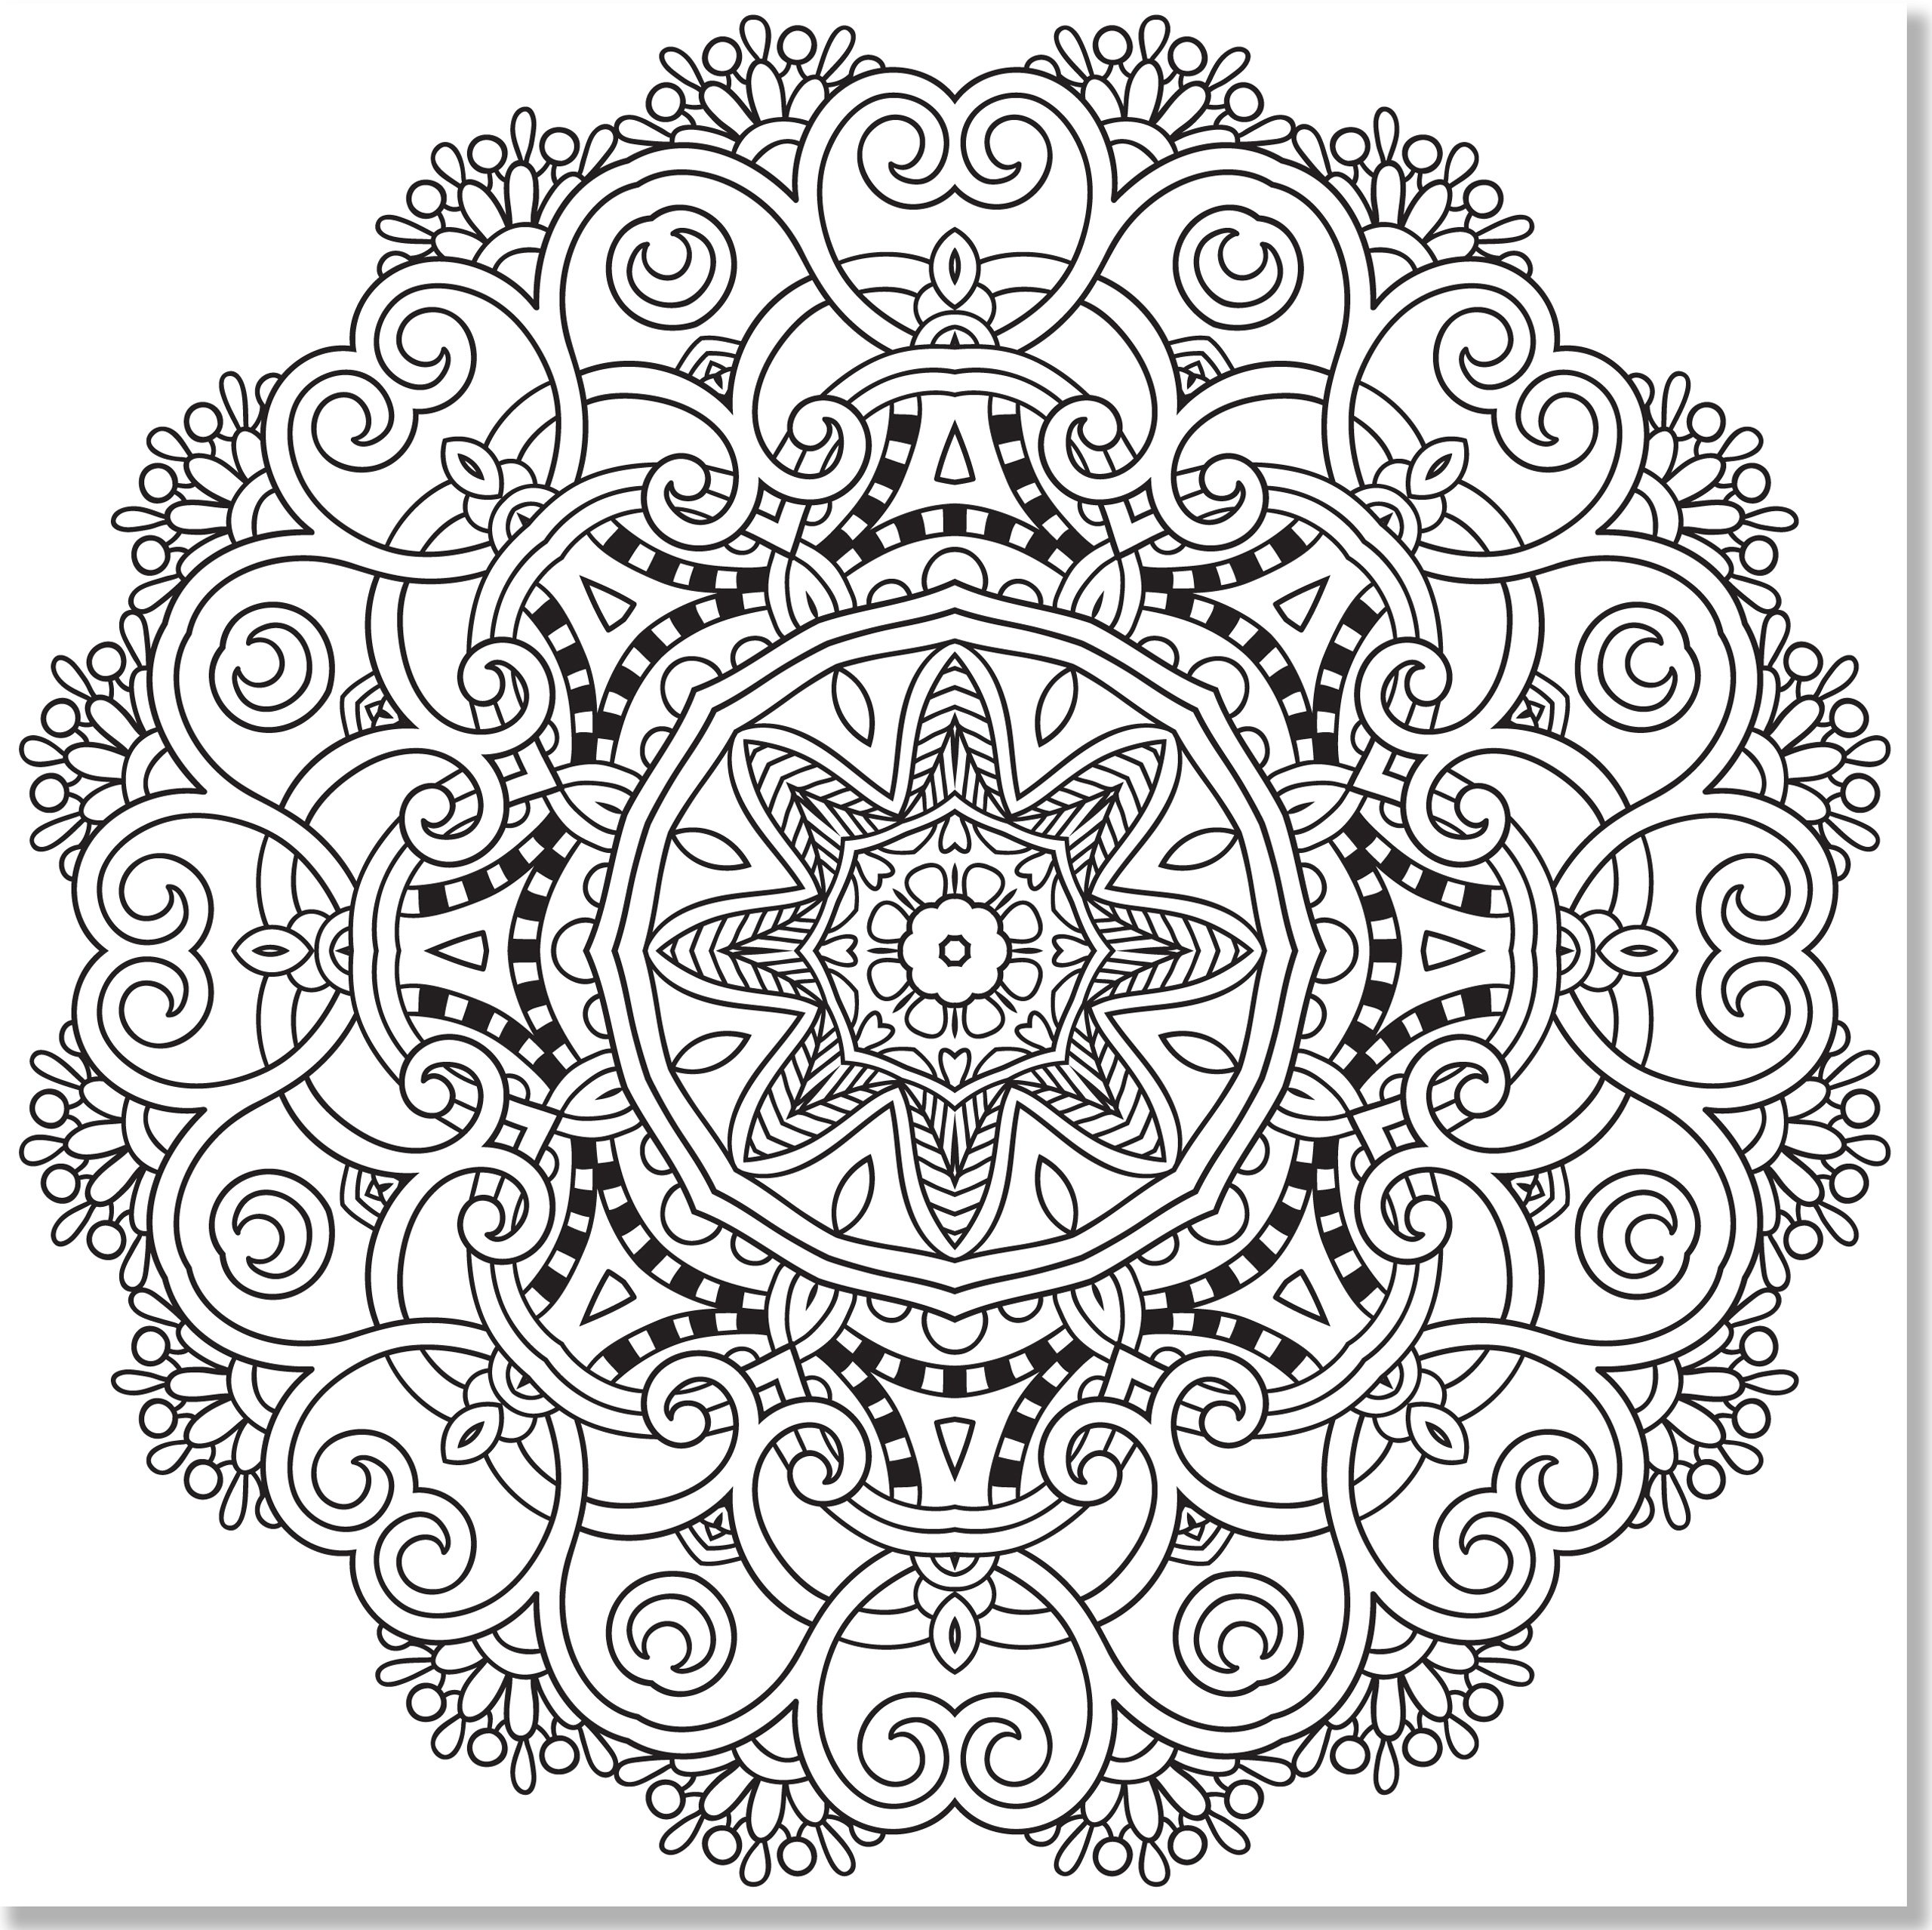 Mandala coloring pages amazon - Amazon Com Mandala Designs Adult Coloring Book 31 Stress Relieving Designs Studio 9781441317445 Peter Pauper Press Books